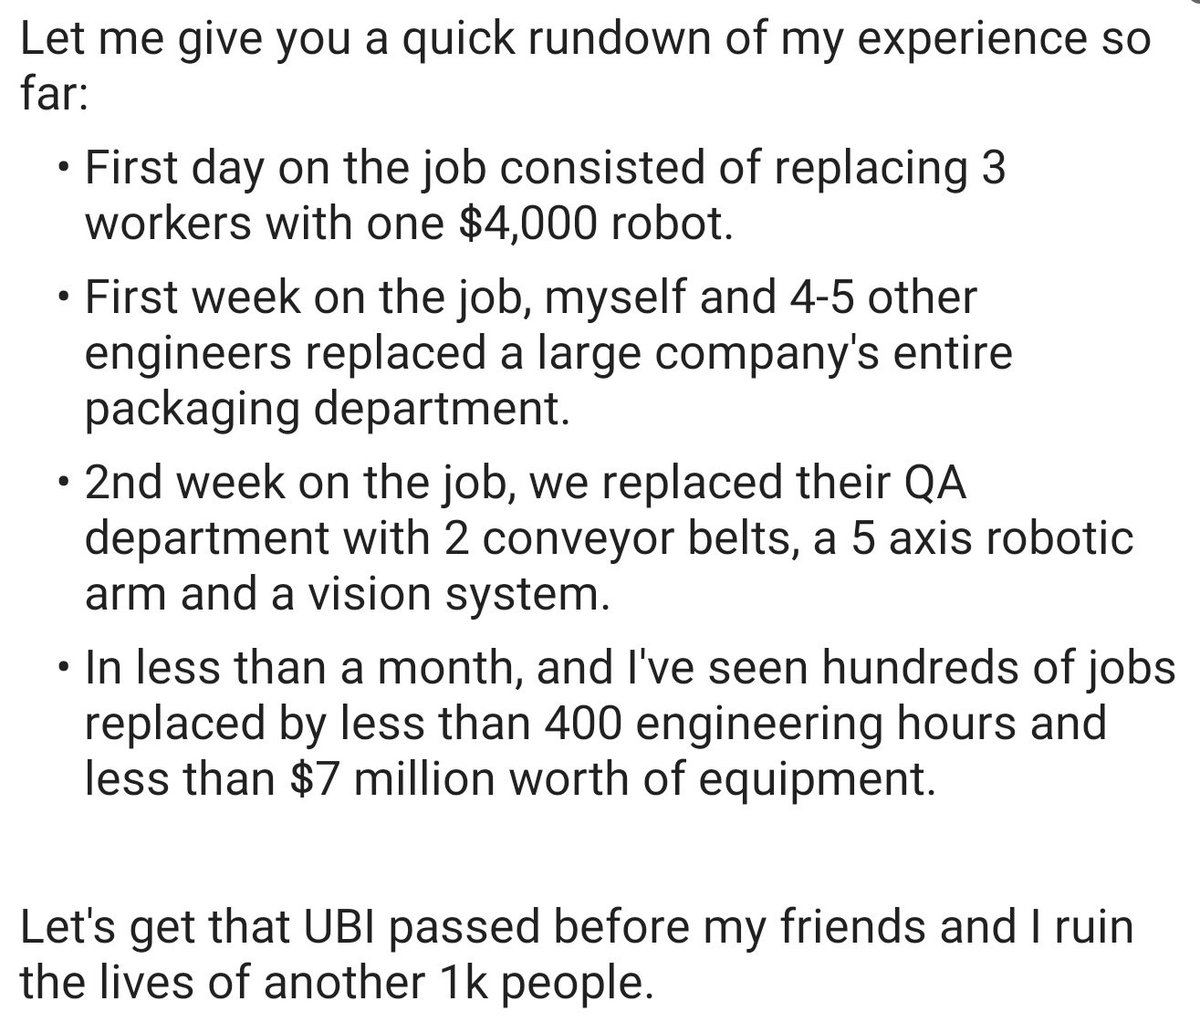 Intern describes just how many jobs they've personally helped eliminate within weeks of starting their internship in automation. Automation should be something those doing the automating are proud of, not something people feel guilty about. We need productivity-indexed UBI ASAP.